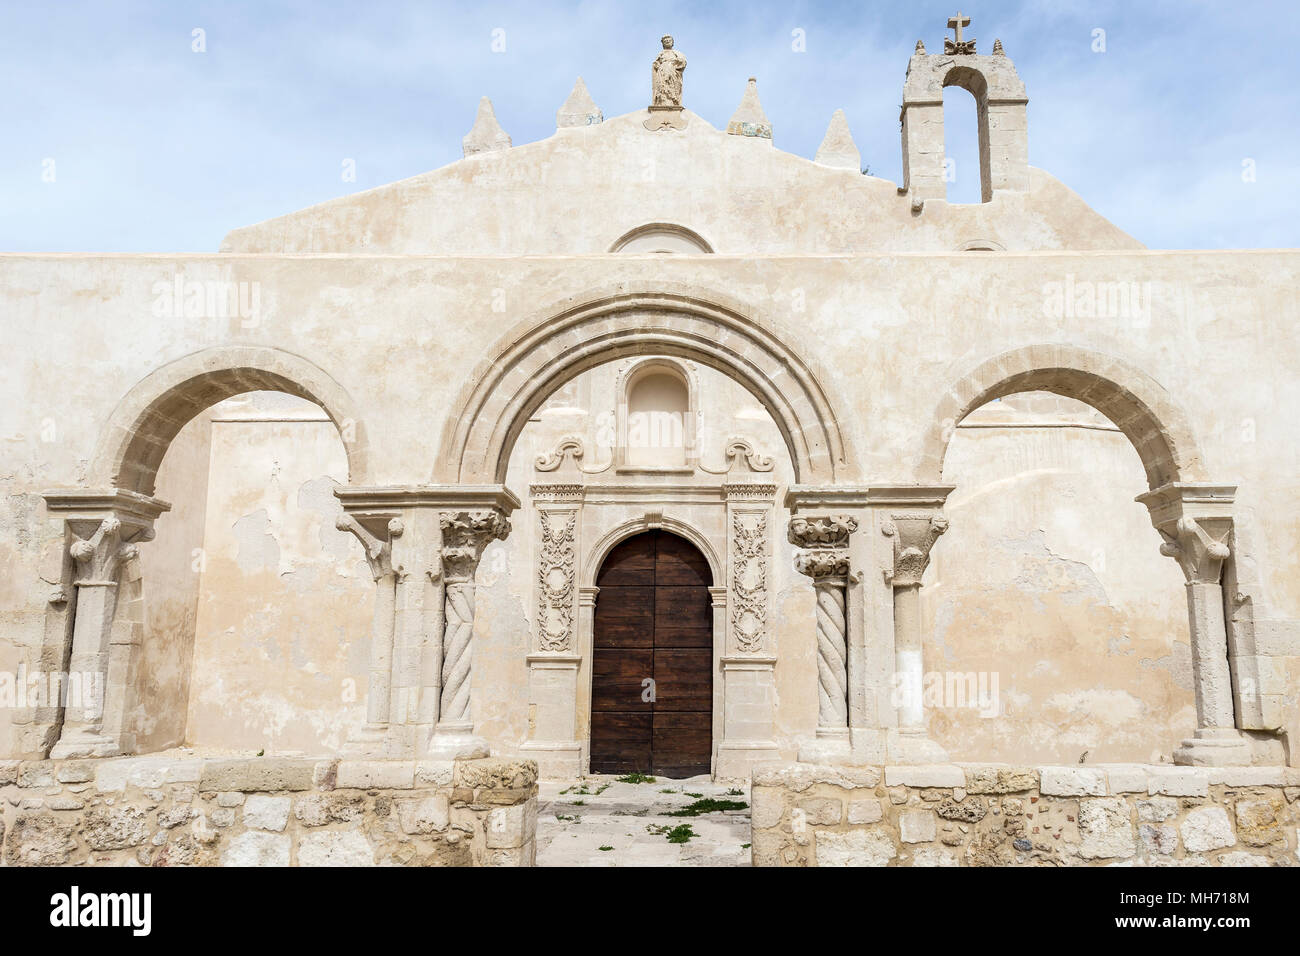 Chiesa di San Giovanni alle catacombe church, Siracusa, Sicily. - Stock Image